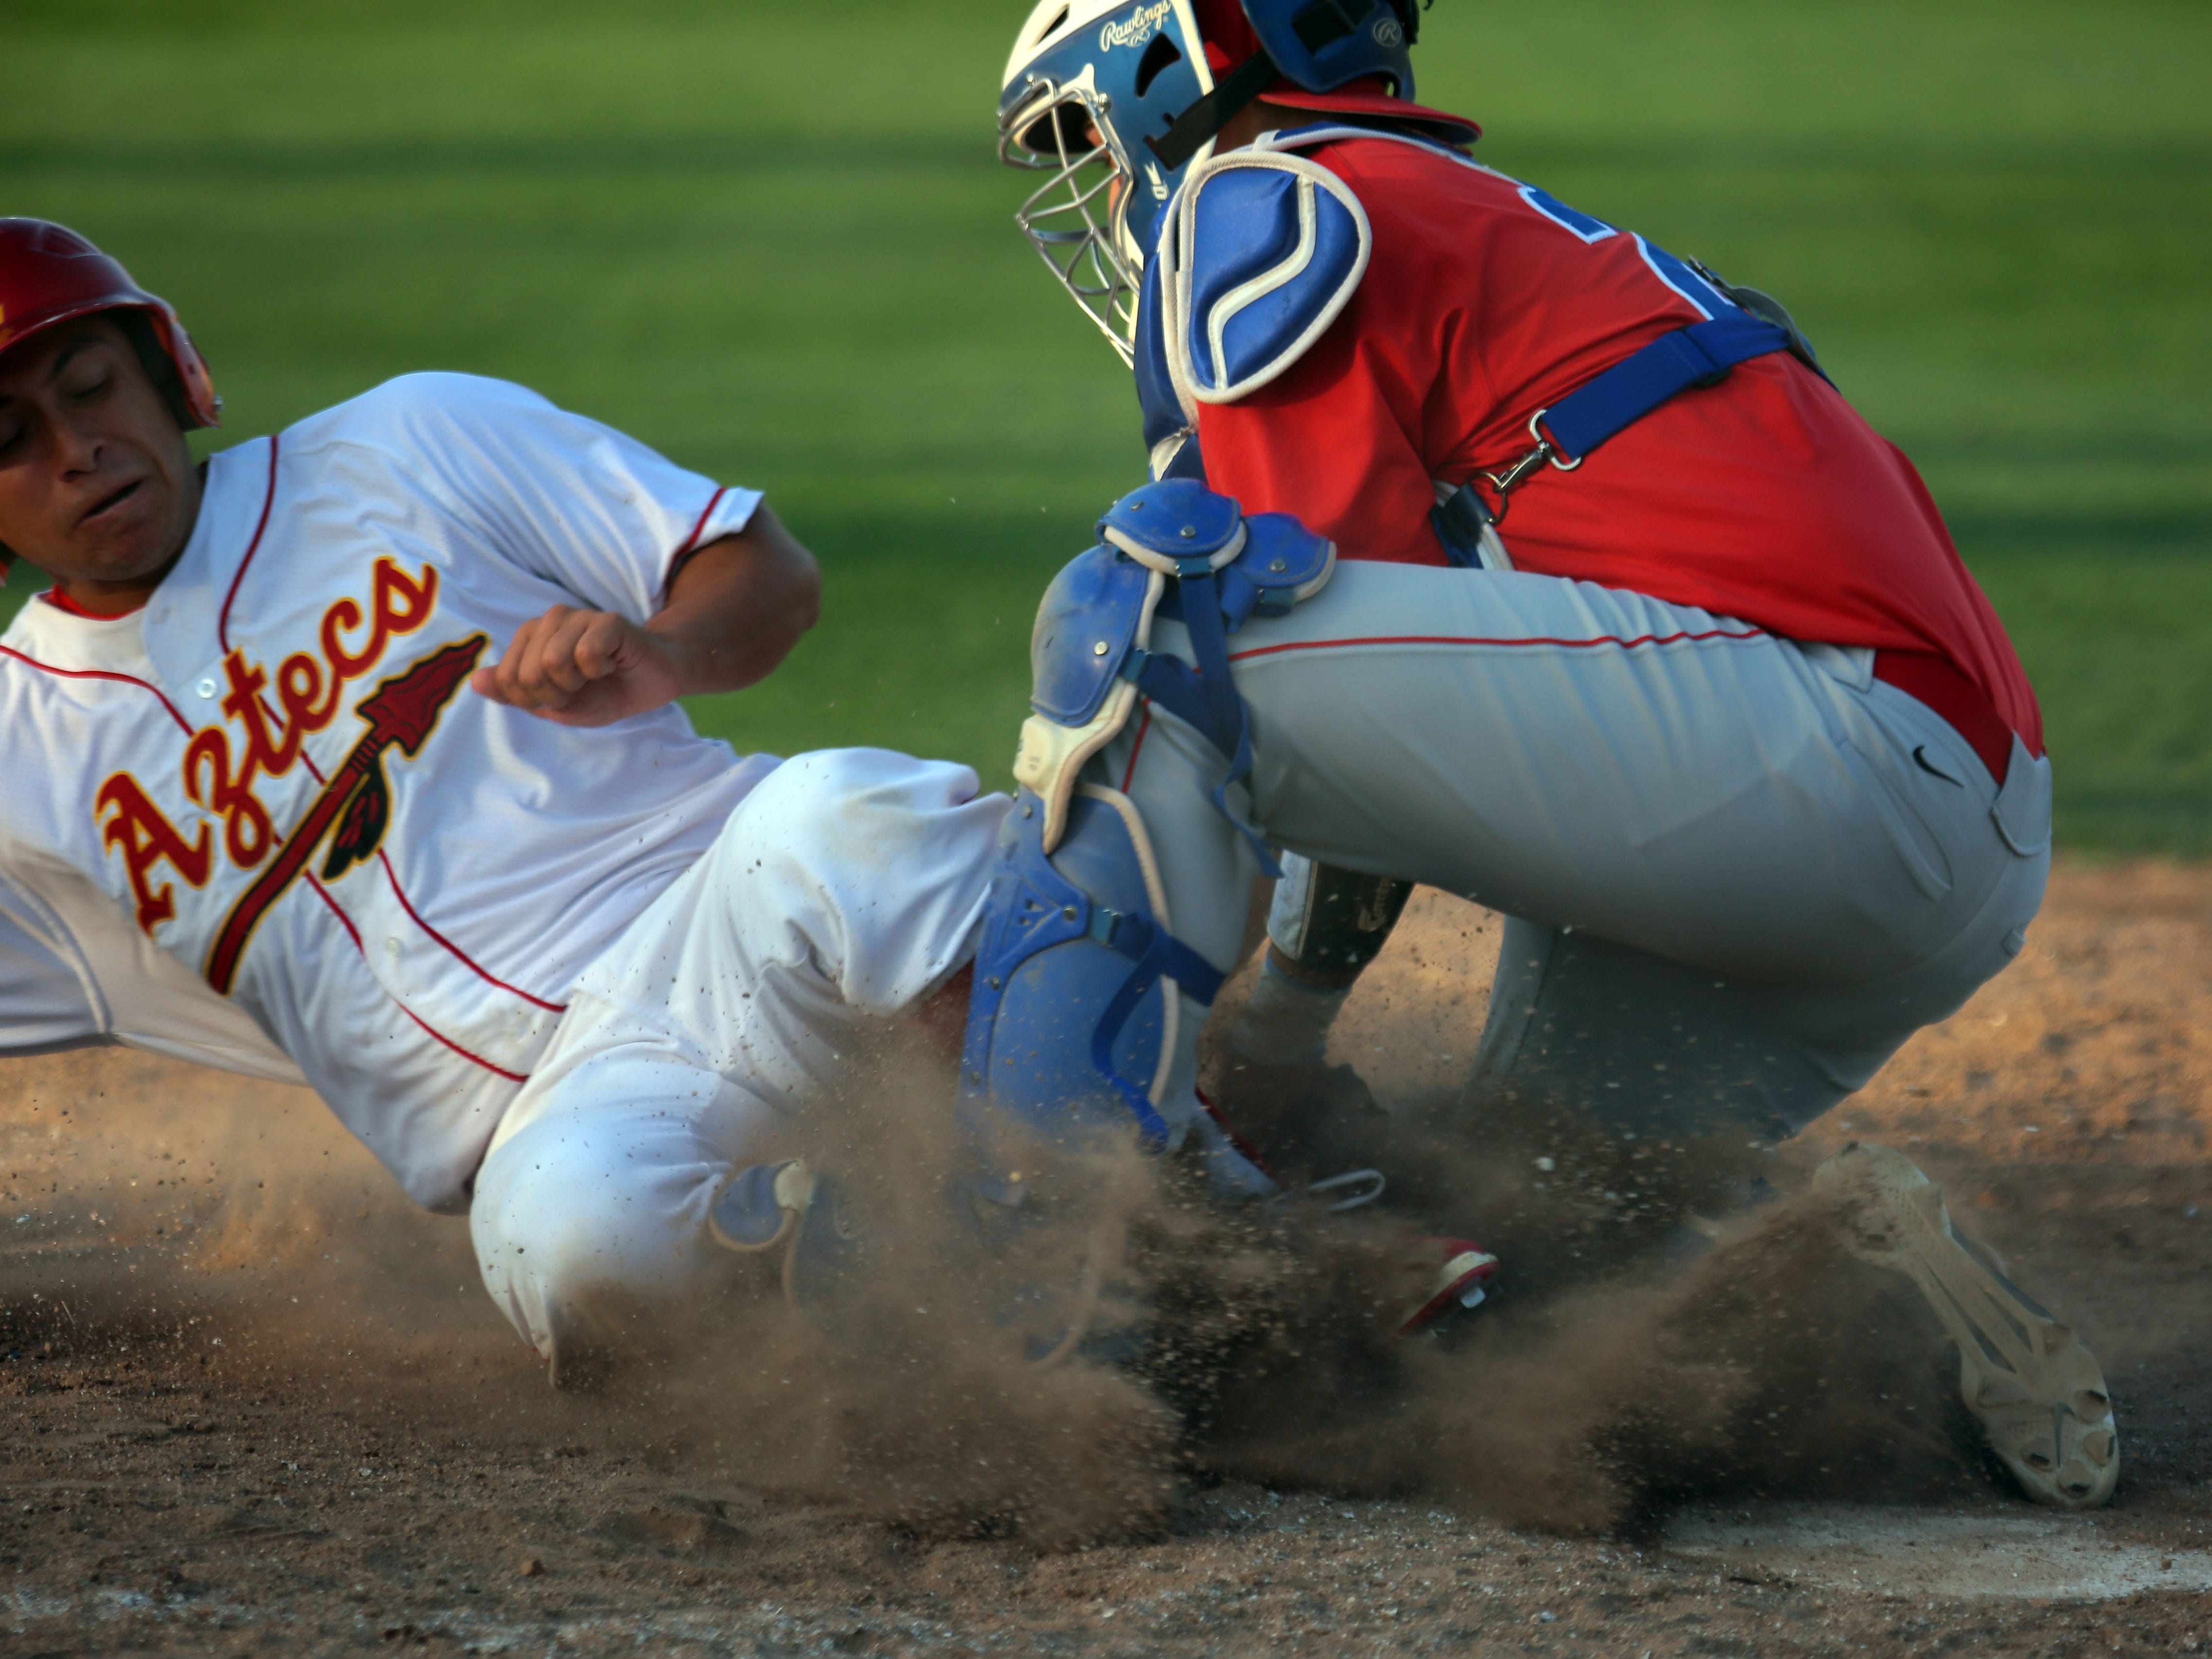 Palm Desert's Gil Sauceda slides safely into home as the ball reaches Indio catcher Steven Lopez in the first inning on Tuesday in Palm Desert.